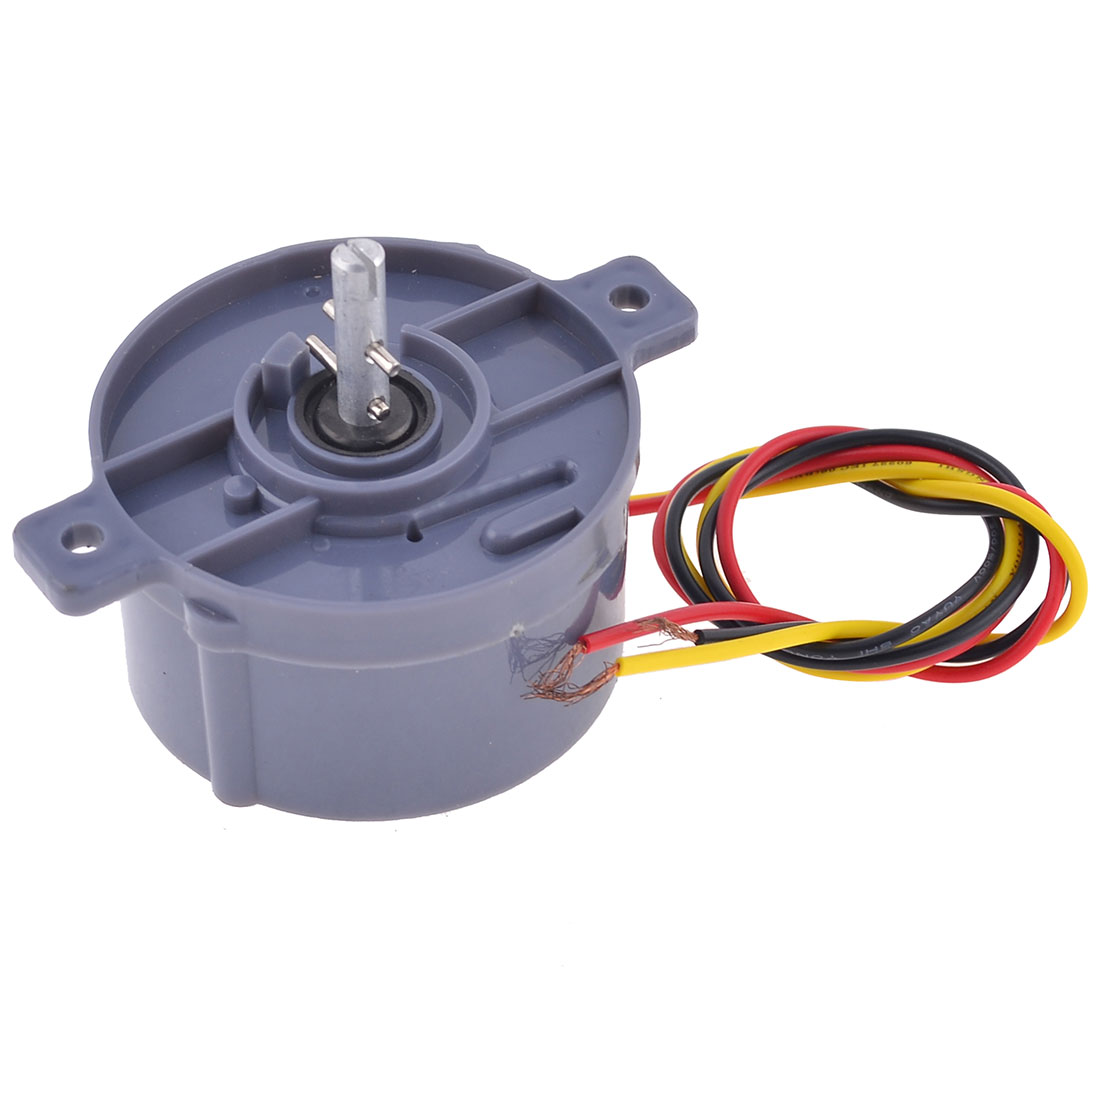 Spare Part 220V 1.6A 0-49 Minutes Round Timer for LG Electric Fan